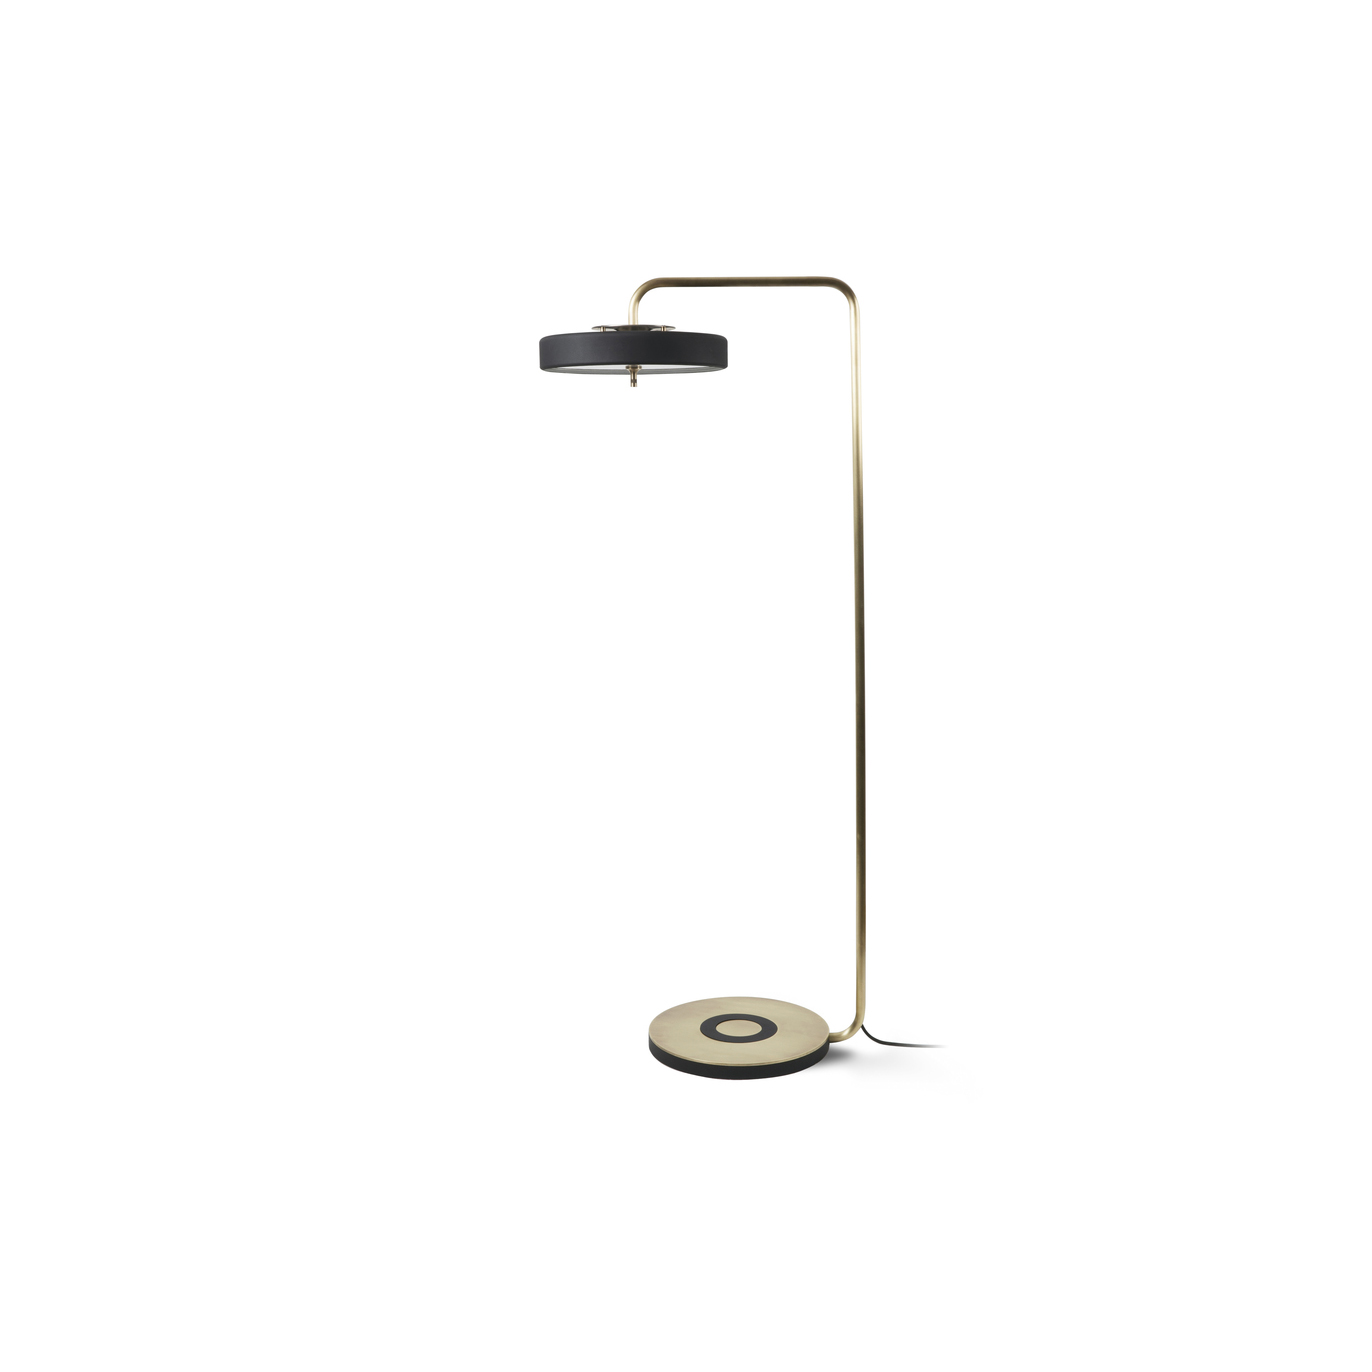 Revolve Floor Lamp - The perfect partner to a reading chair or a stylish way to highlight a corner space, the Revolve Floor Lamp features an overhanging spun metal shade and a hand-brushed brass stand.  | Matter of Stuff